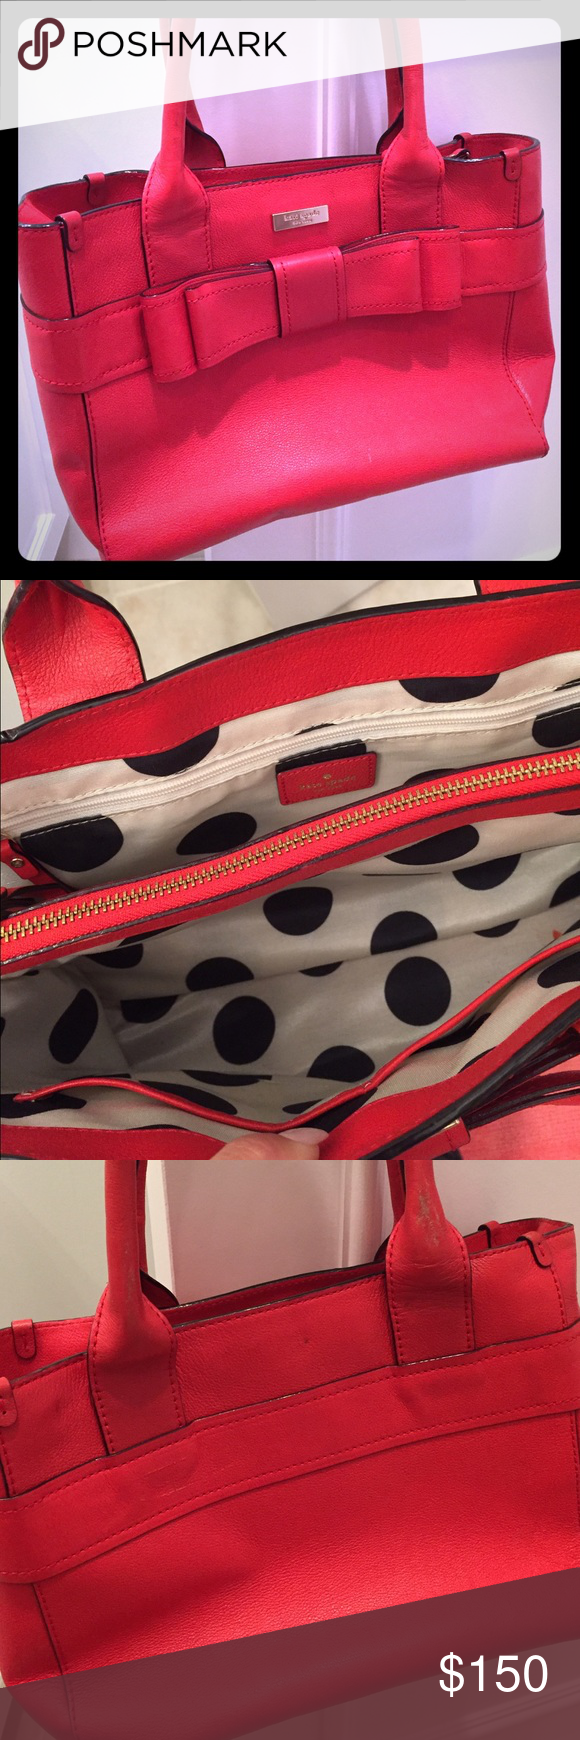 Kate Spade tote Red leather Kate Spade tote with beautiful big bow detailing on the front and adorable black and white polka dot fabric silk lining with middle zipper pocket panel kate spade Bags Totes